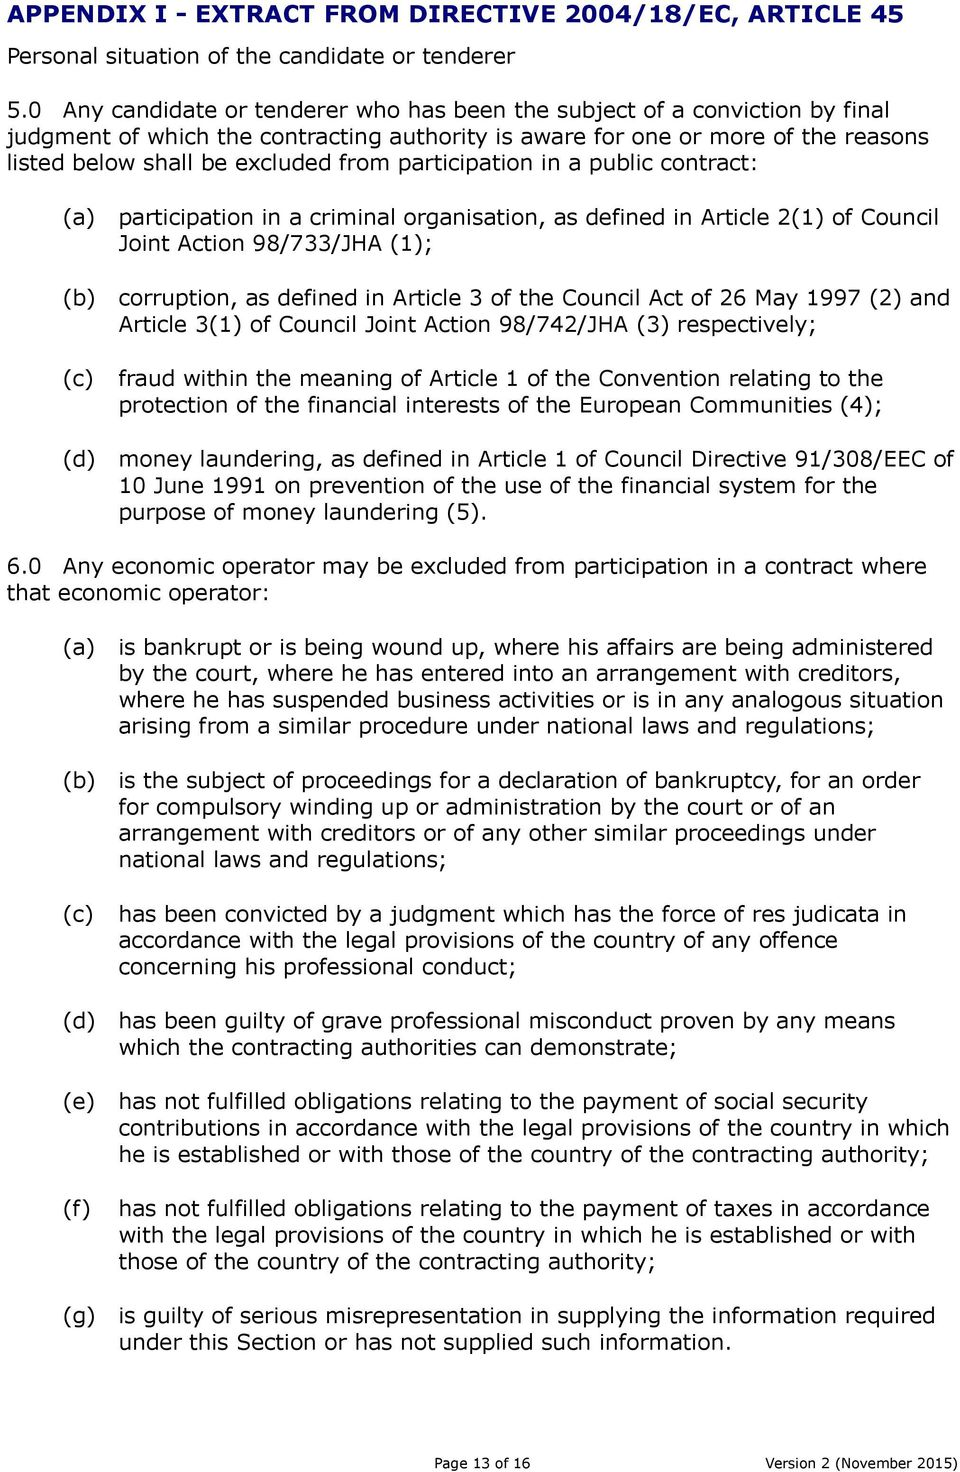 participation in a public contract: (a) (b) (c) (d) participation in a criminal organisation, as defined in Article 2(1) of Council Joint Action 98/733/JHA (1); corruption, as defined in Article 3 of